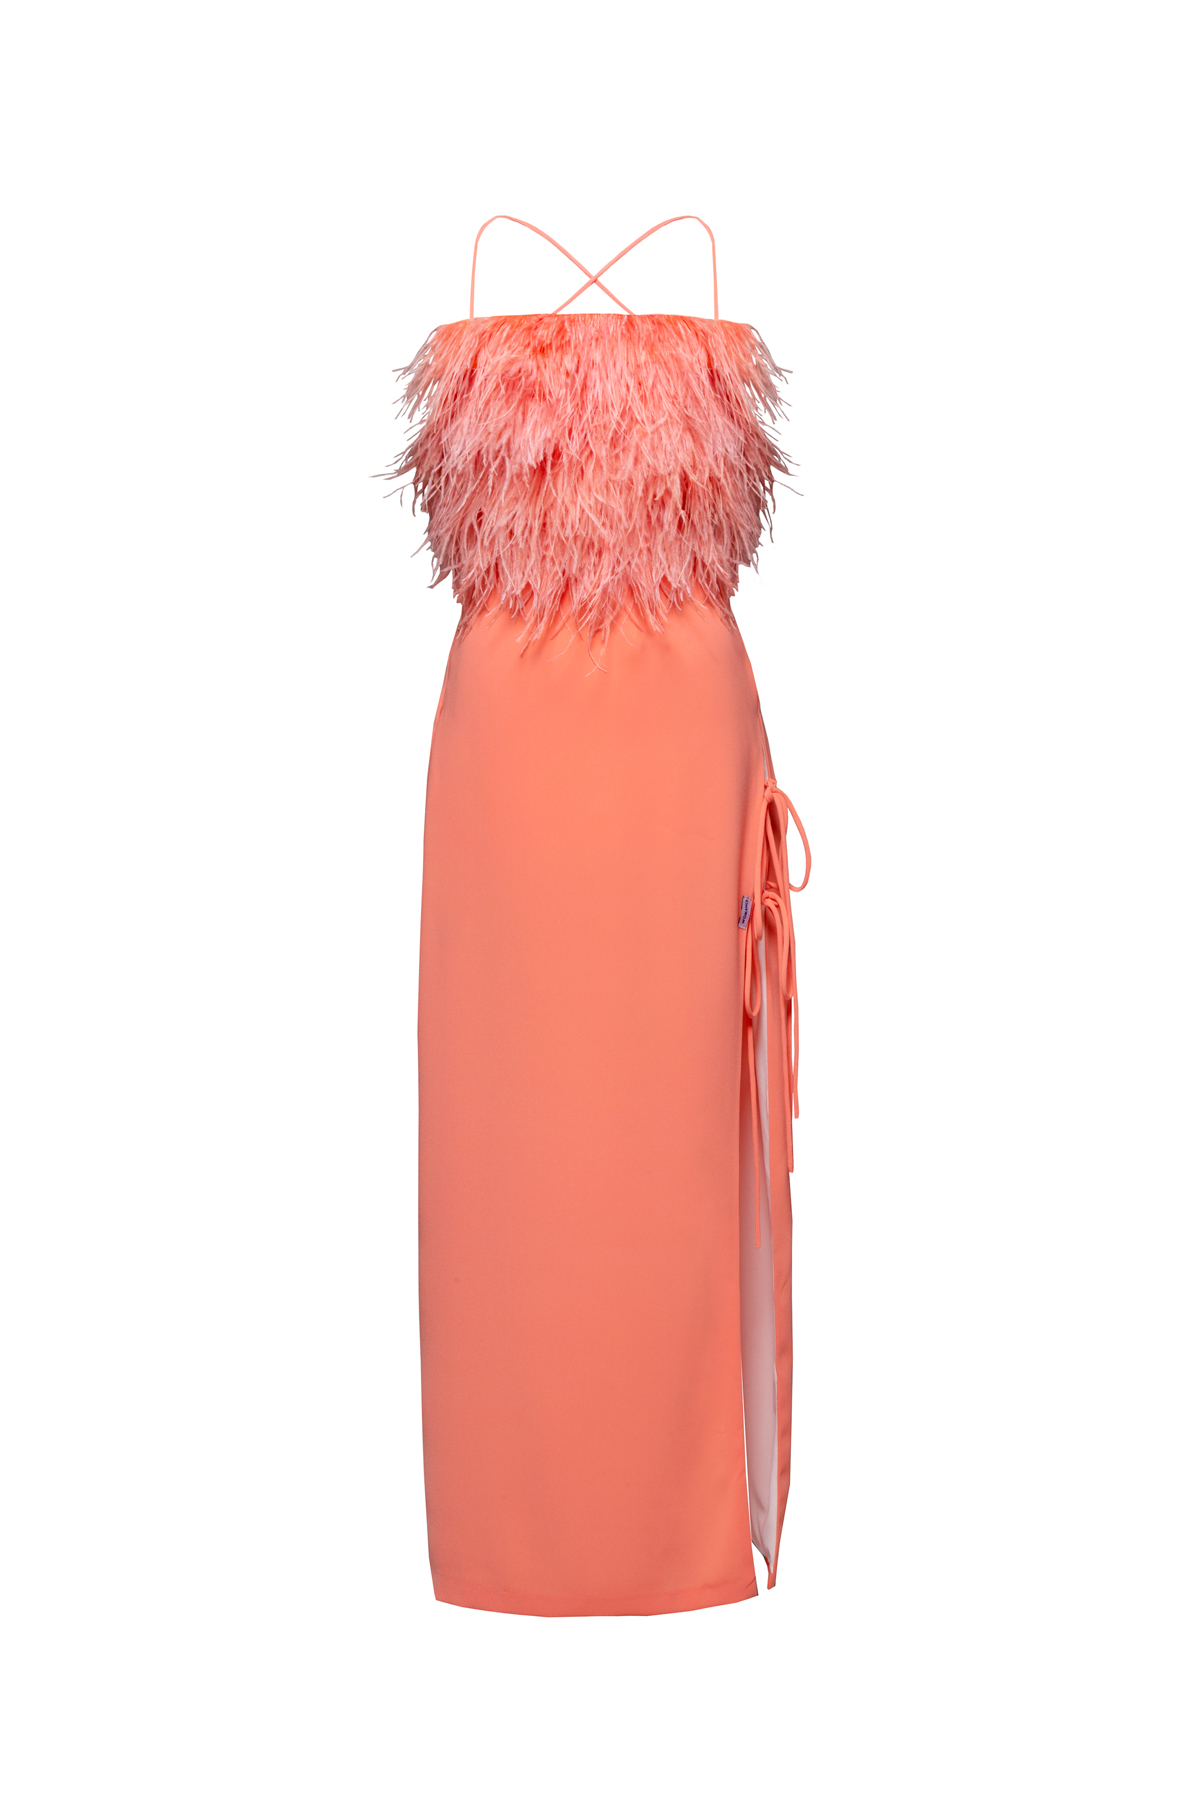 womace-lemon-crop-top-long-skirt-combo-dress-party-feathers-coral